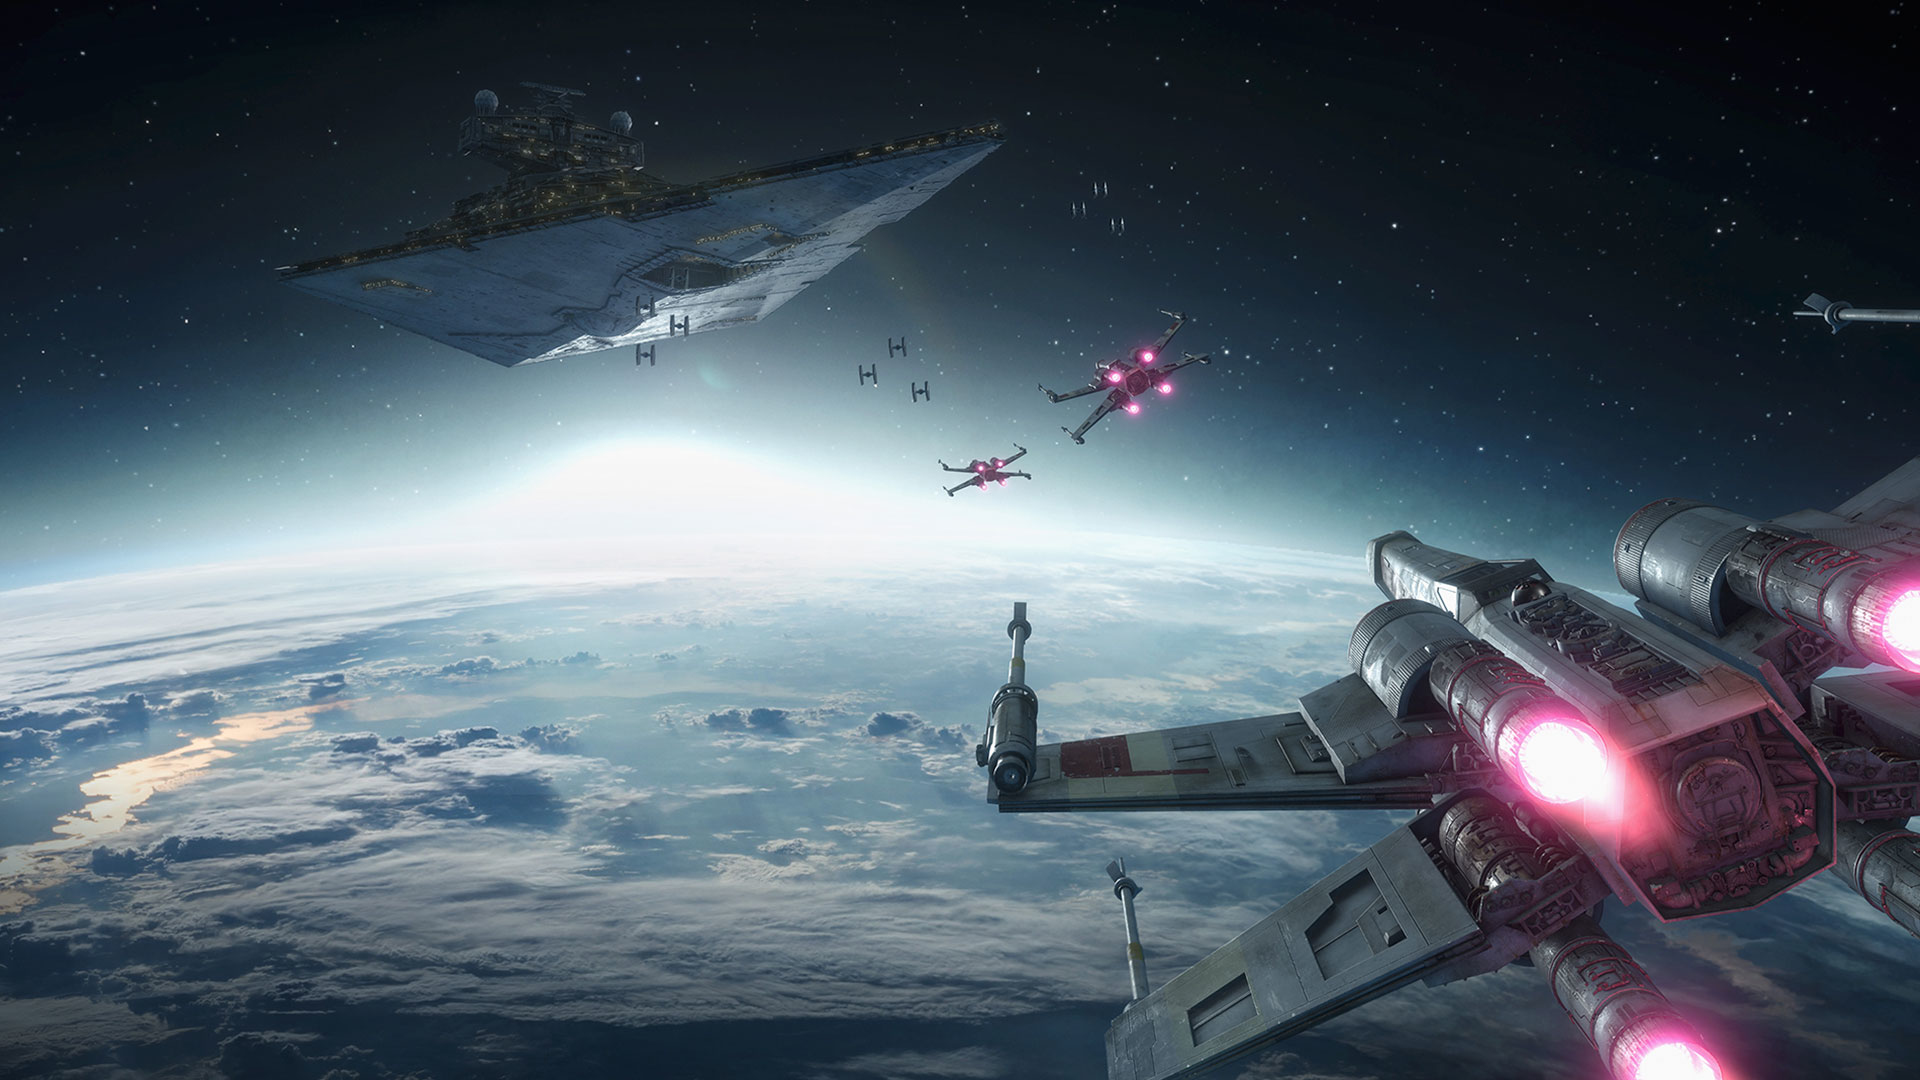 Star Wars: Rogue Squadron Details - LaunchBox Games Database